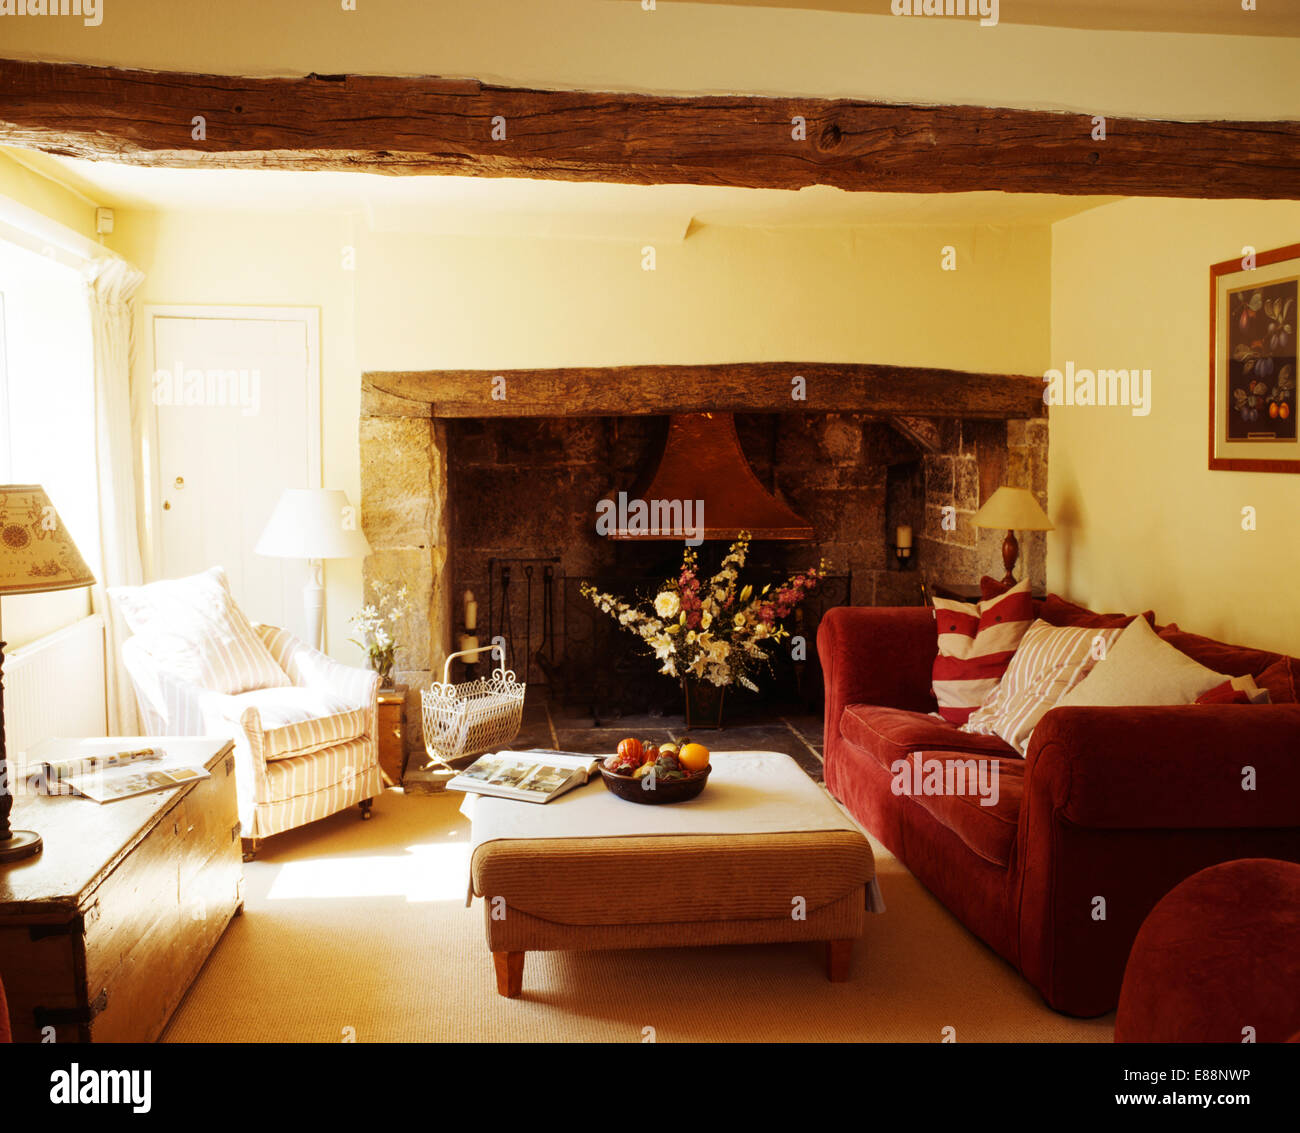 Upholstered Stool And Red Velvet Sofa In Country Living Room With Inglenook Fireplace